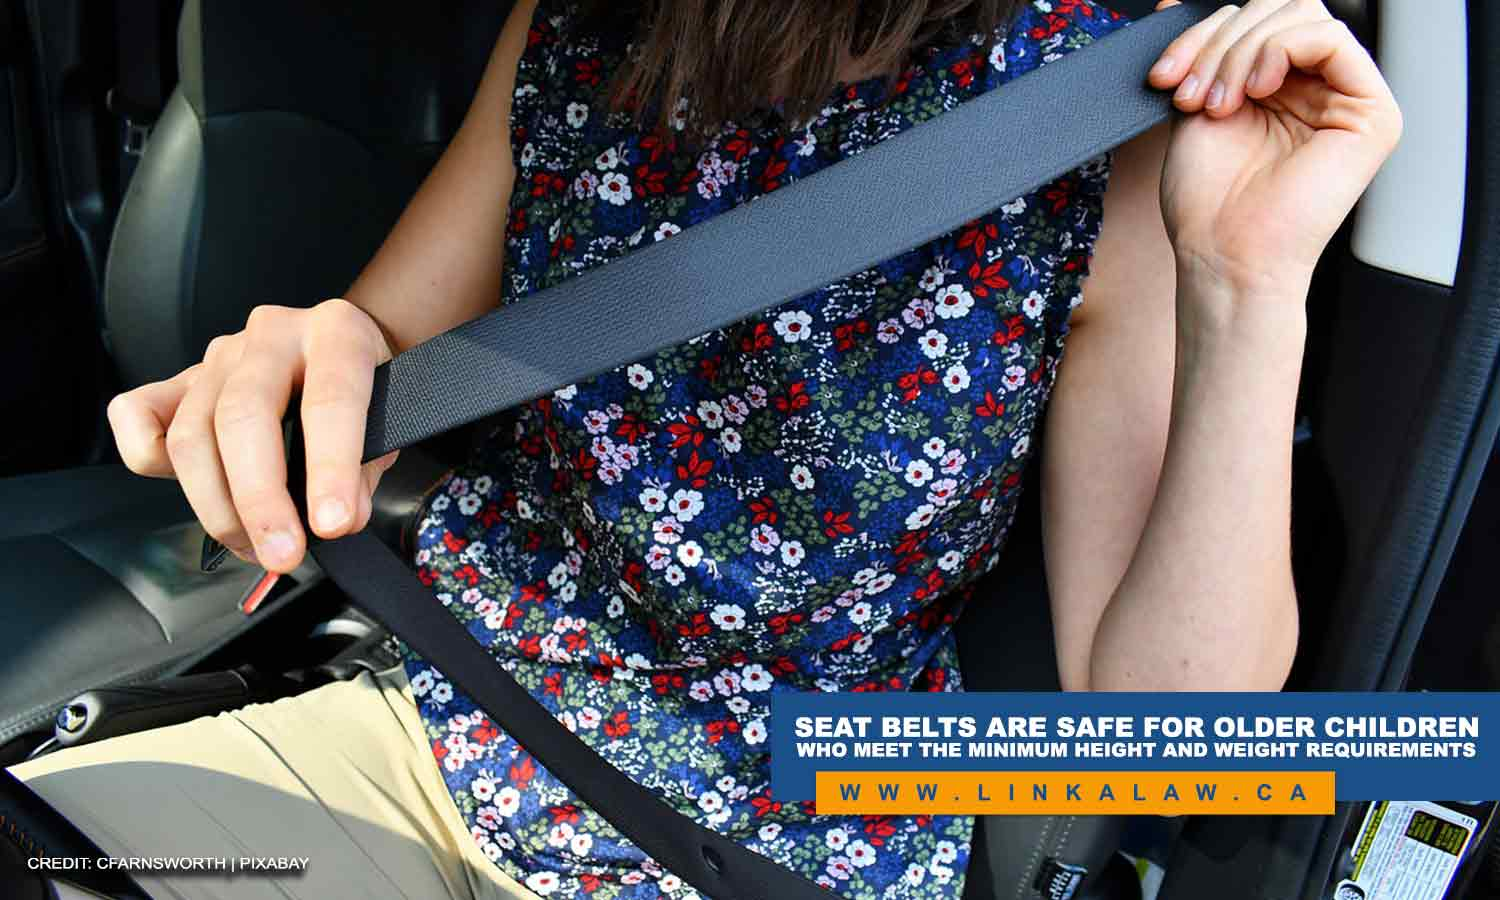 Seat belts are safe for older children who meet the minimum height and weight requirements